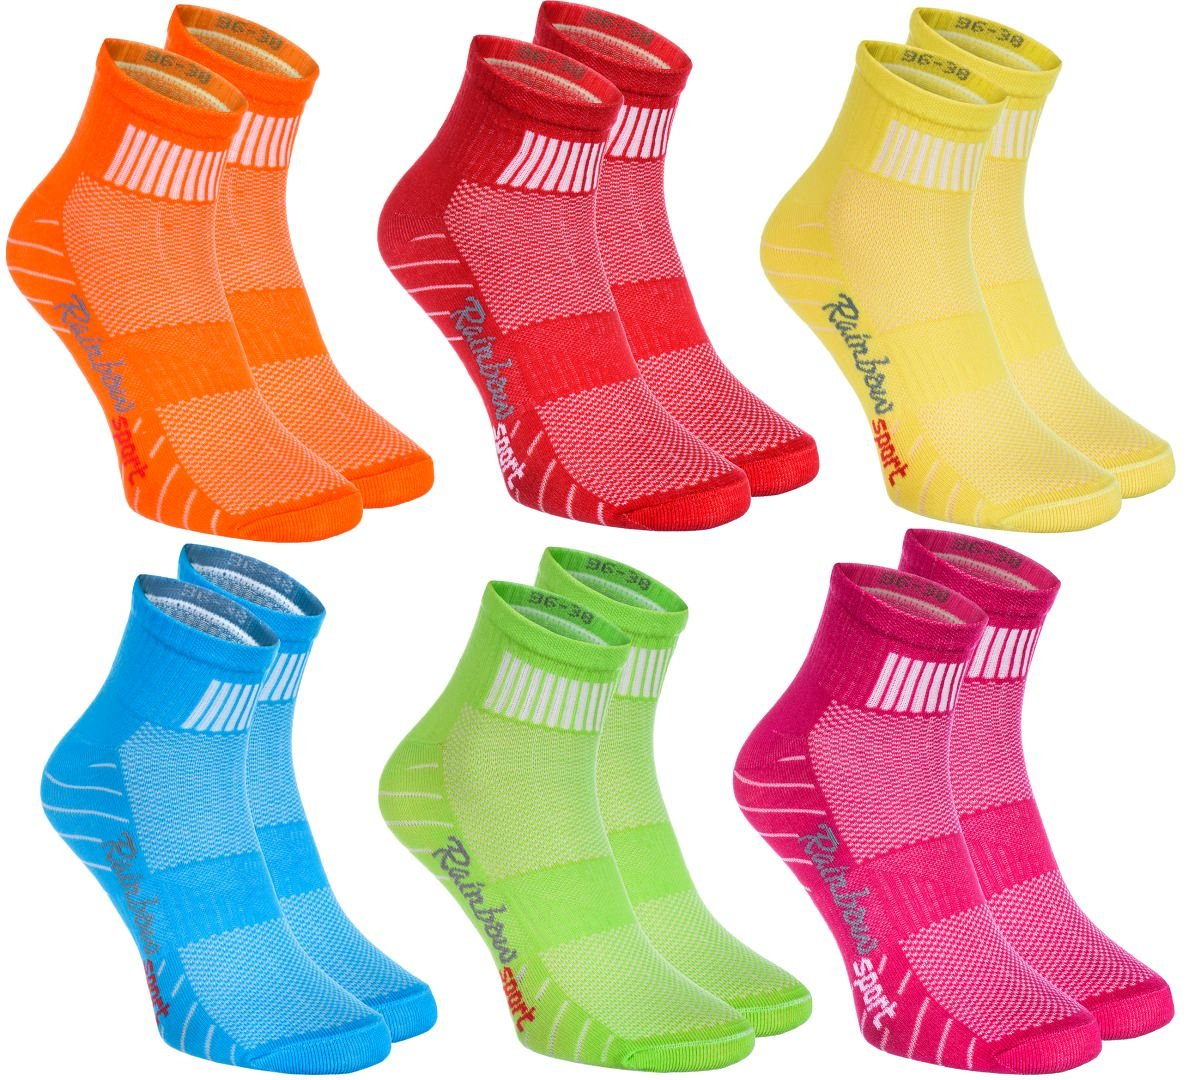 Rainbow SOCKSHOSIERY レディース B074G2QDW7 US 5.5-7 EU 36-38|6 X Orange, Red, Yellow, Turquoise, Green, Fuchsia 6 X Orange, Red, Yellow, Turquoise, Green, Fuchsia US 5.5-7 EU 36-38